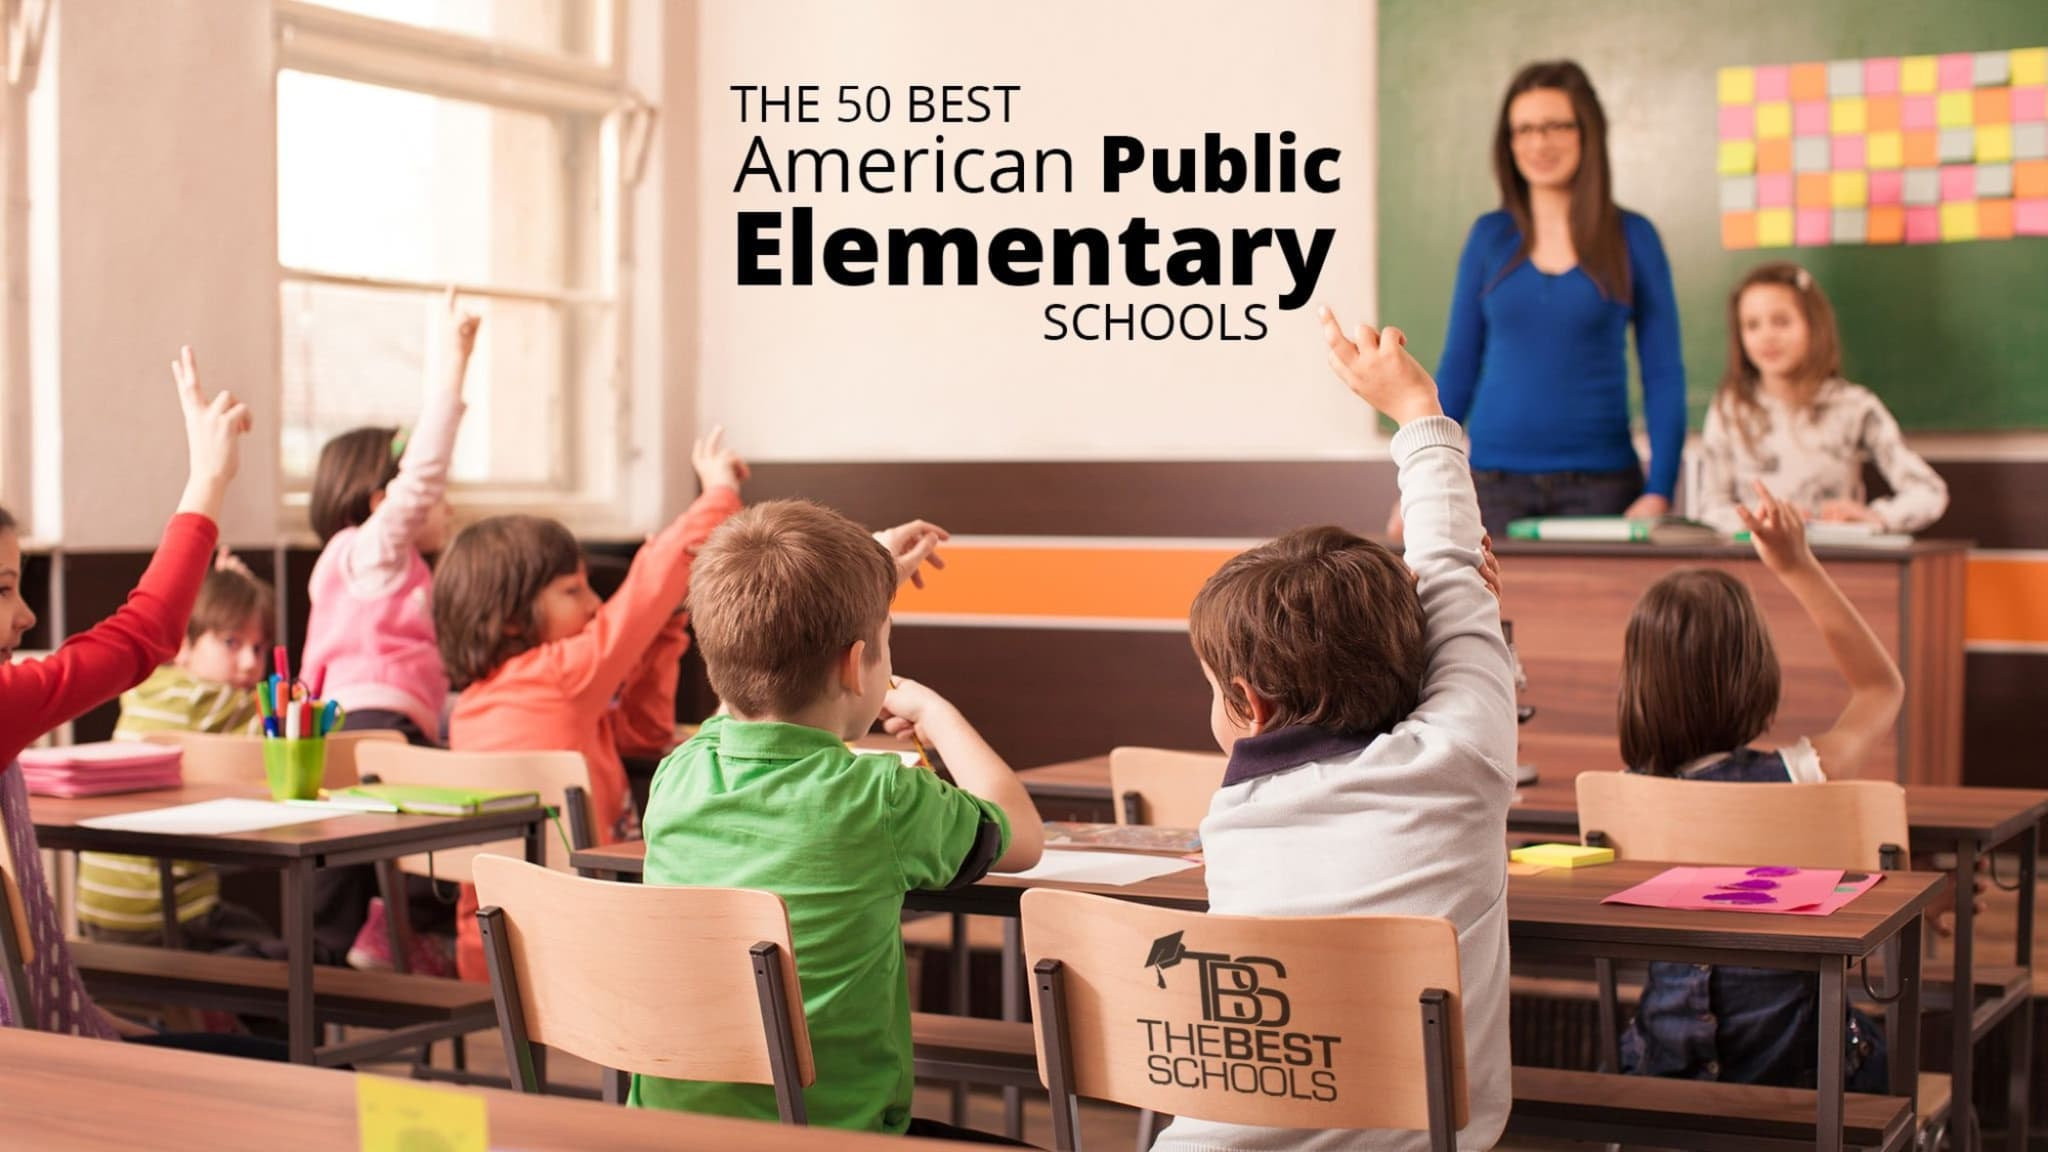 Todays Education System Is Perfectly >> The 50 Best American Public Elementary Schools Thebestschools Org